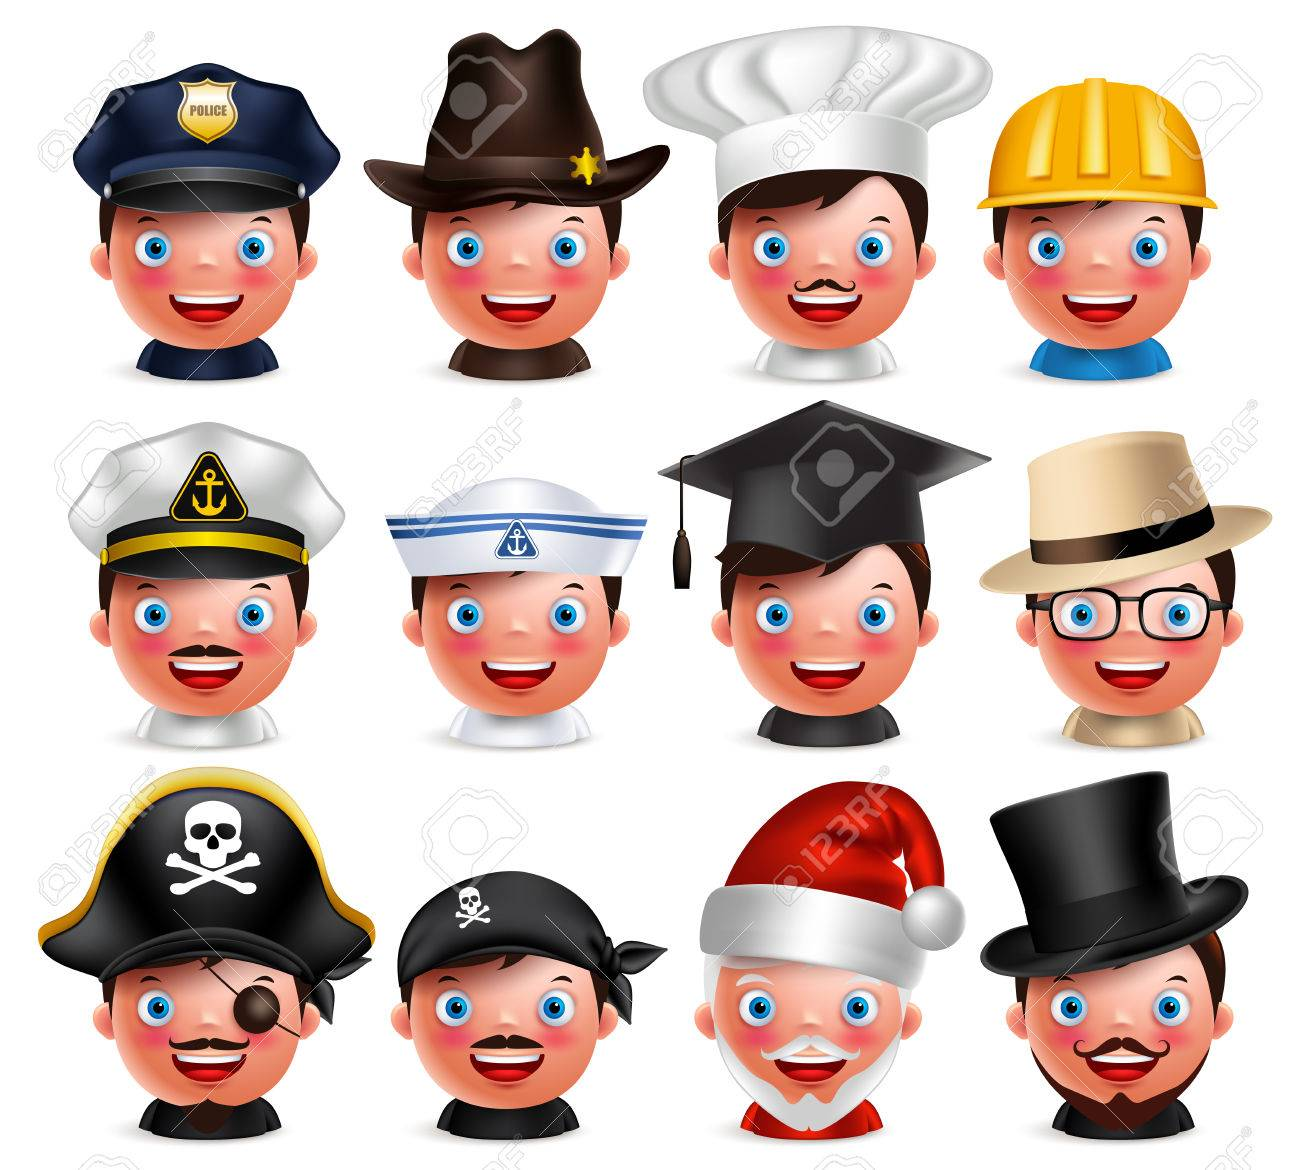 Profession avatar set of happy emoticon heads with different hats of police, seaman, magician, santa claus and pirate isolated in white background. Vector characters. - 61890486